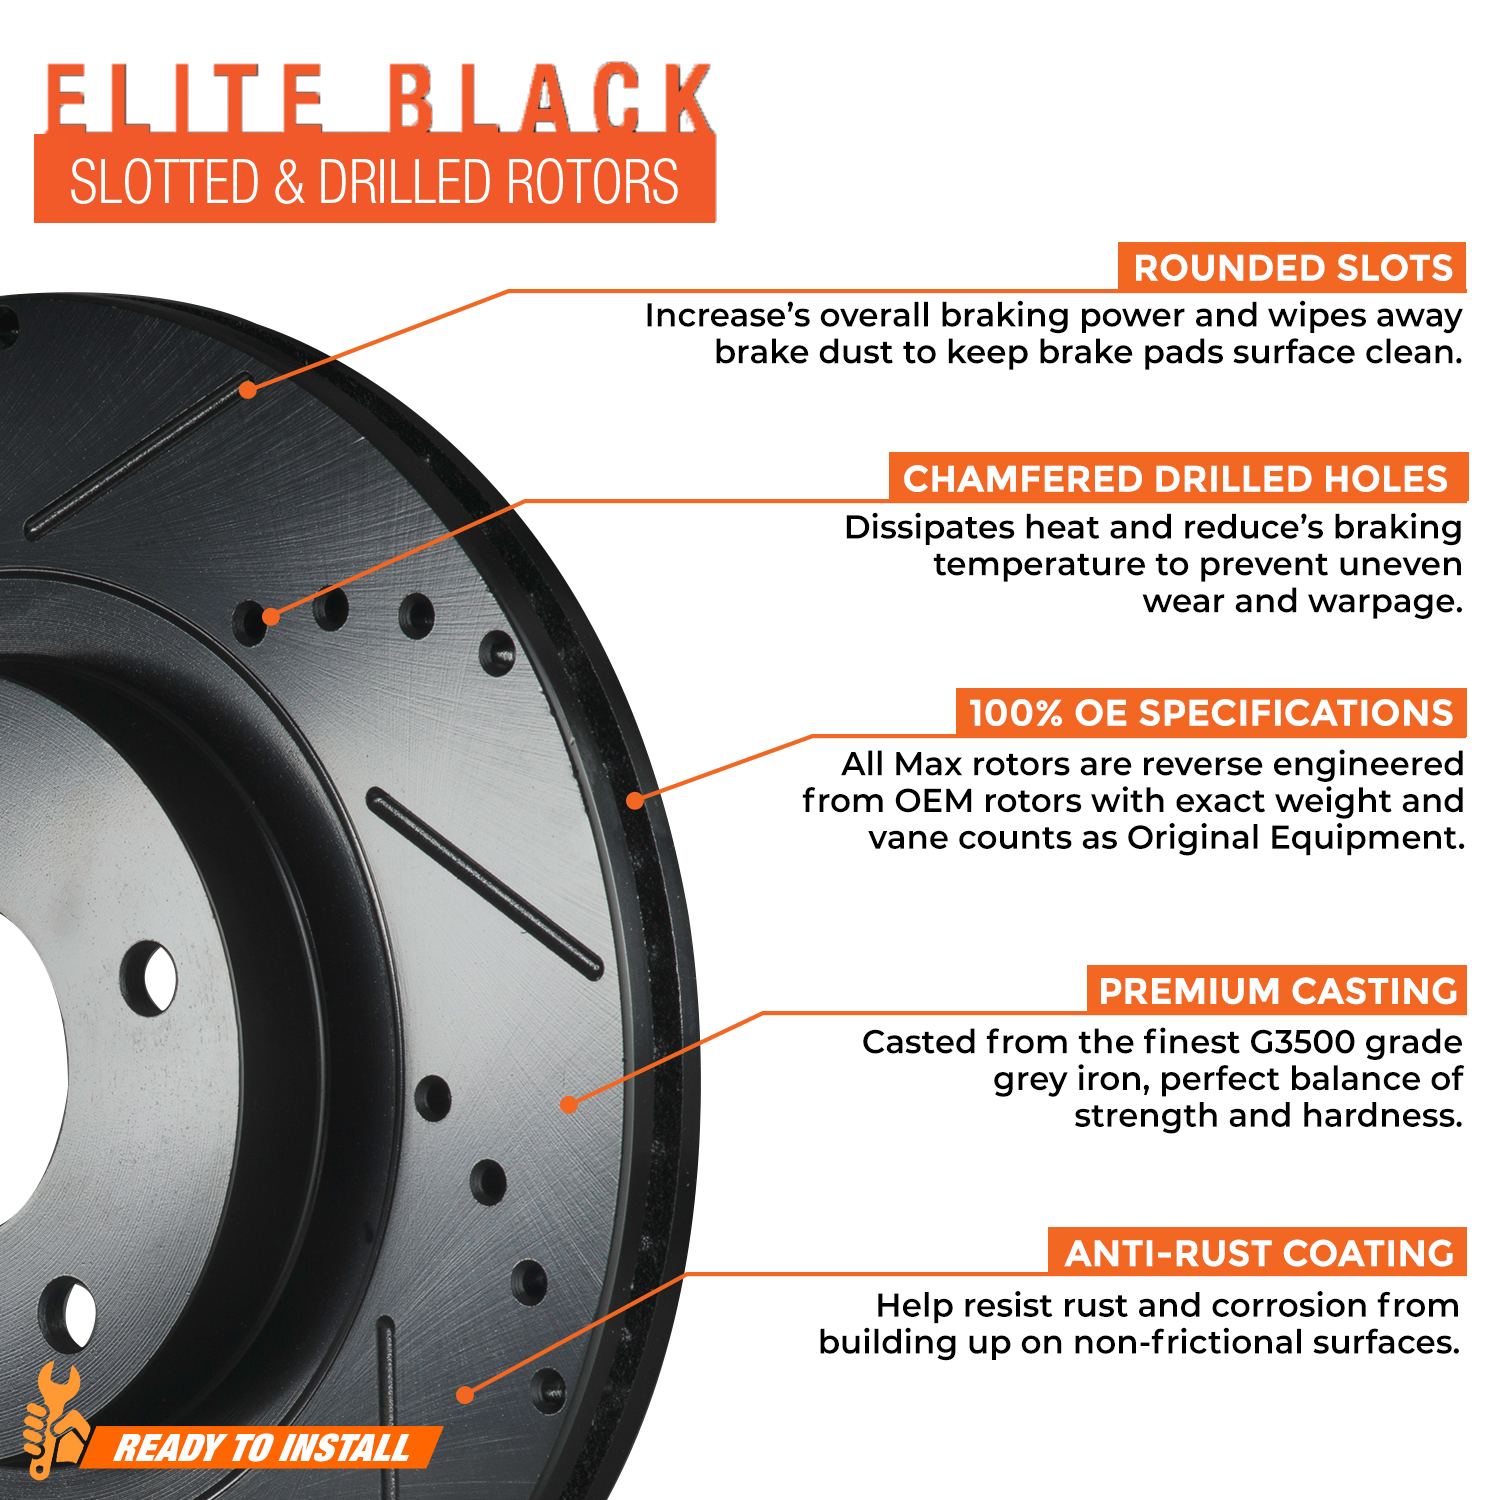 FRONT-REAR-BLACK-Slotted-Drilled-Rotors-with-Ceramic-Pads-amp-Hardware-Kit thumbnail 3